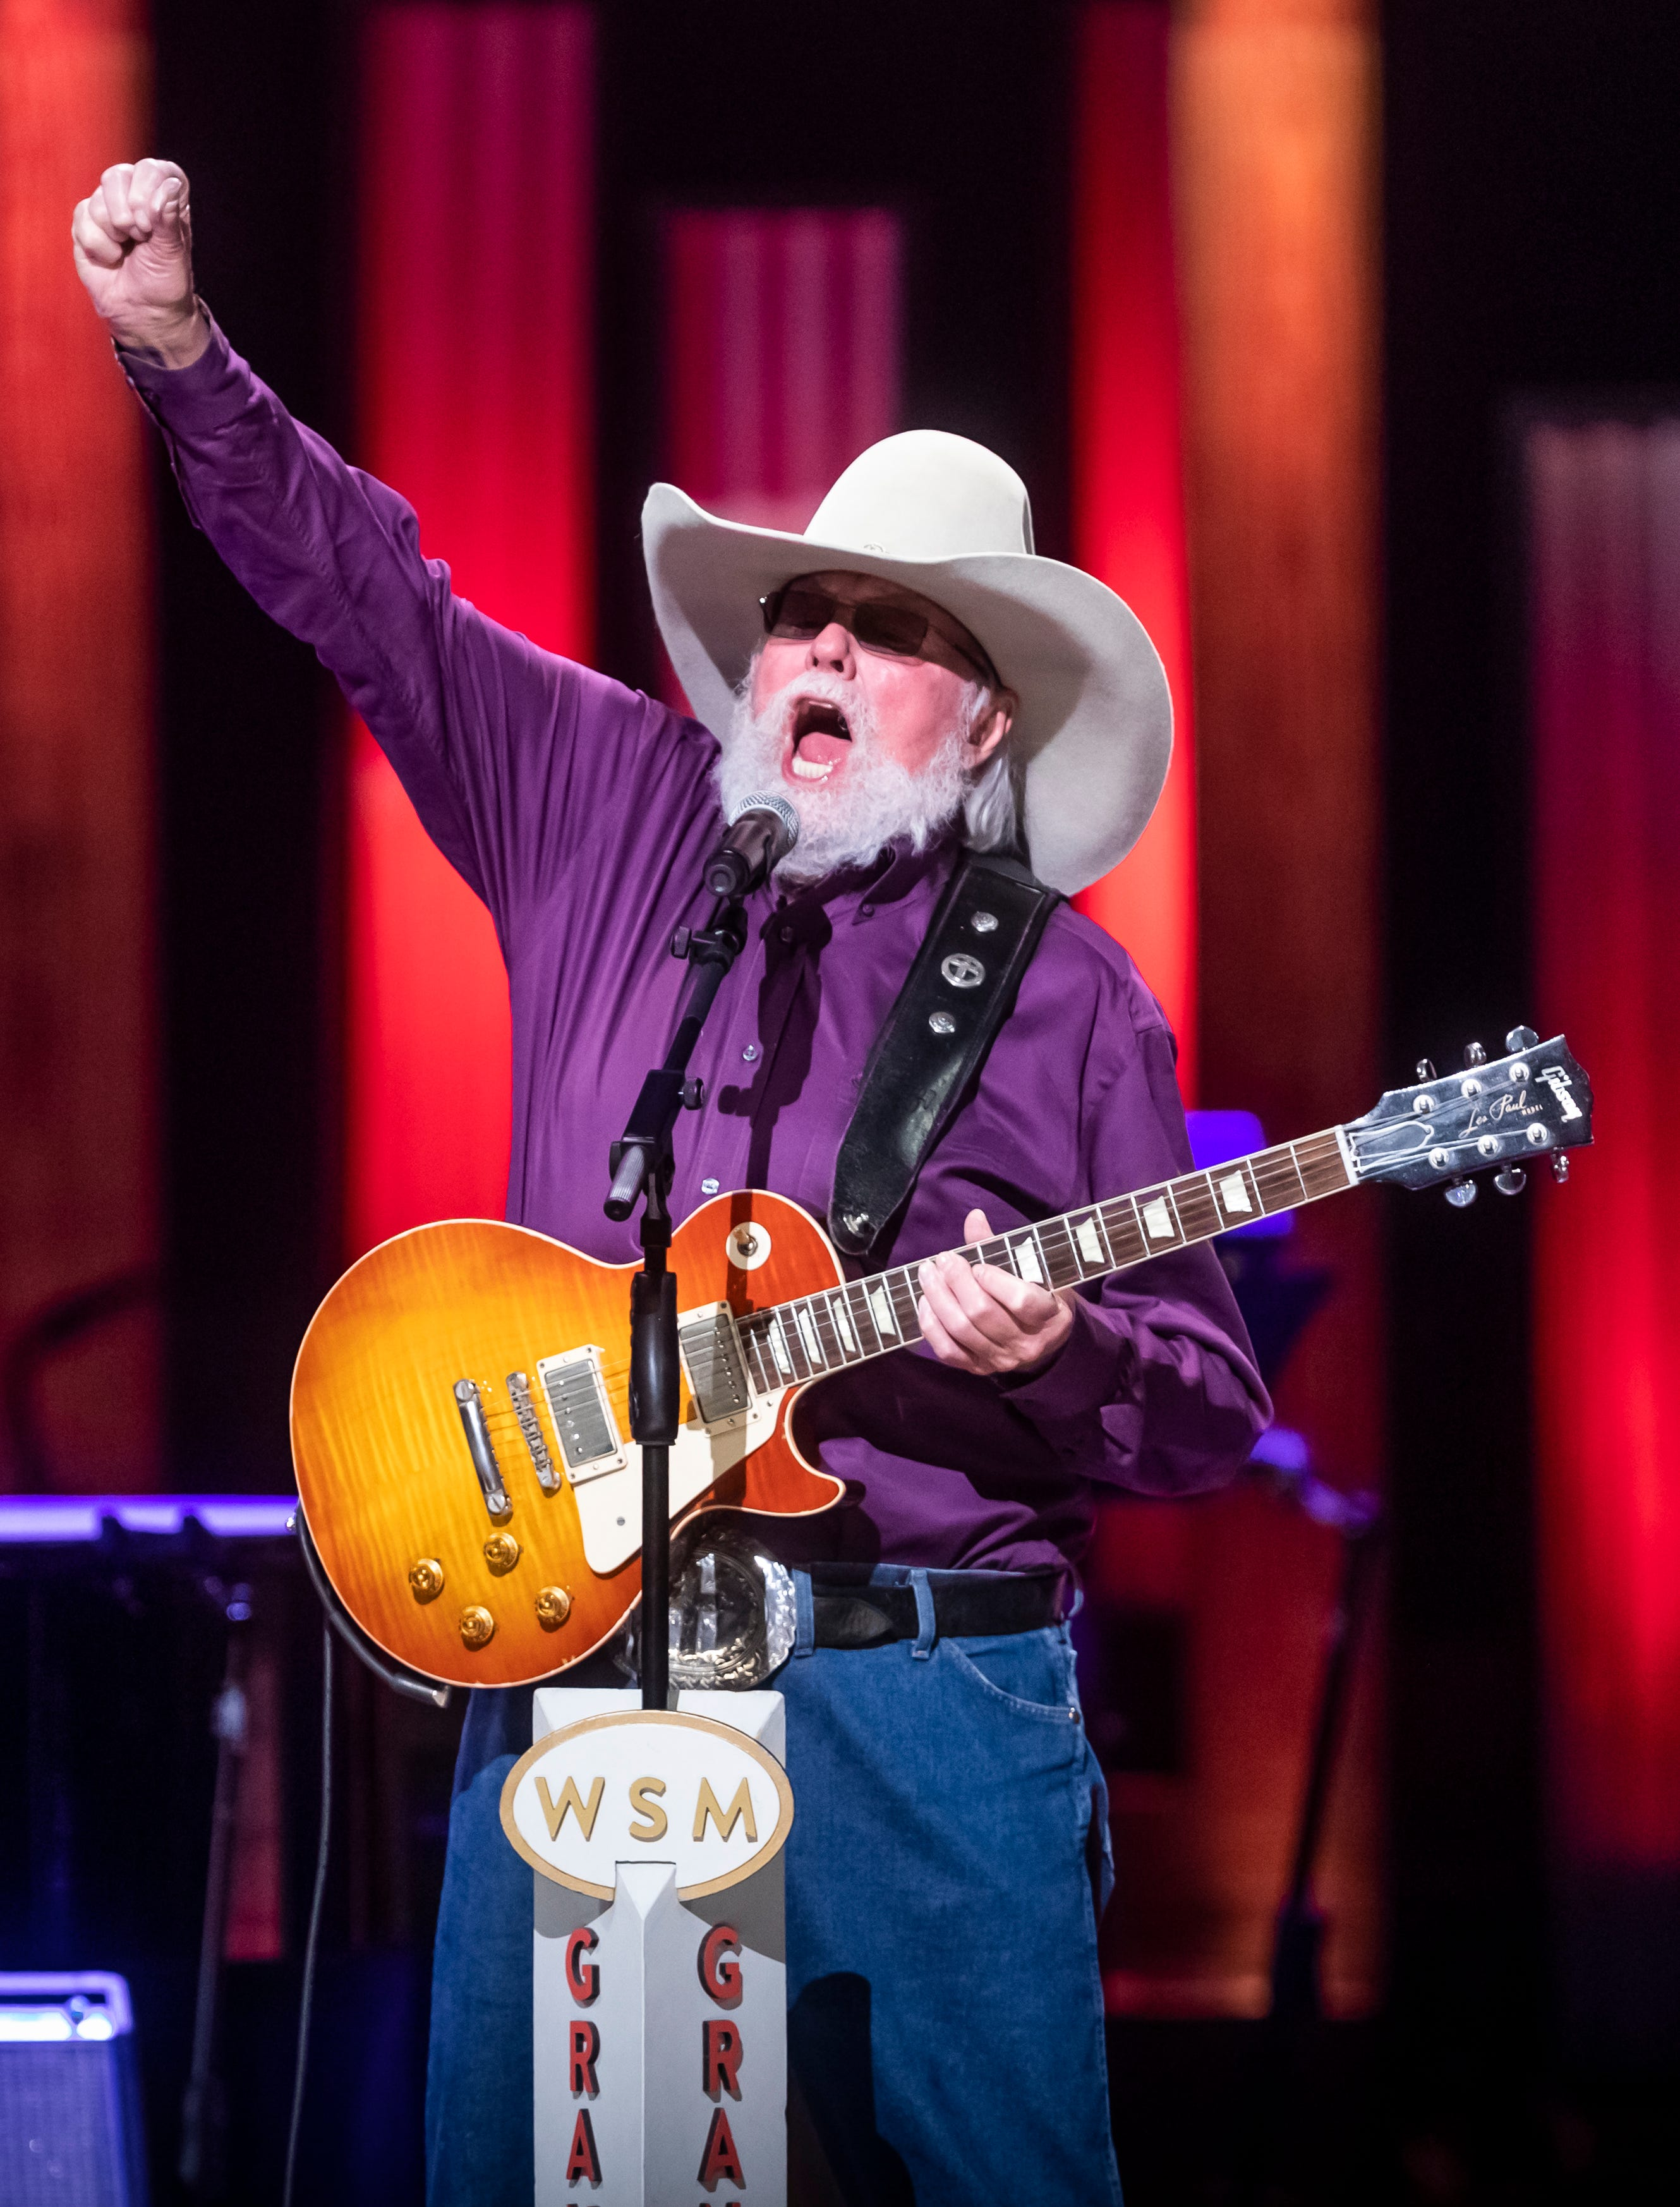 Volunteer Jam to salute Charlie Daniels in 2021; Alabama, Ricky Skaggs, CeCe Winans join lineup